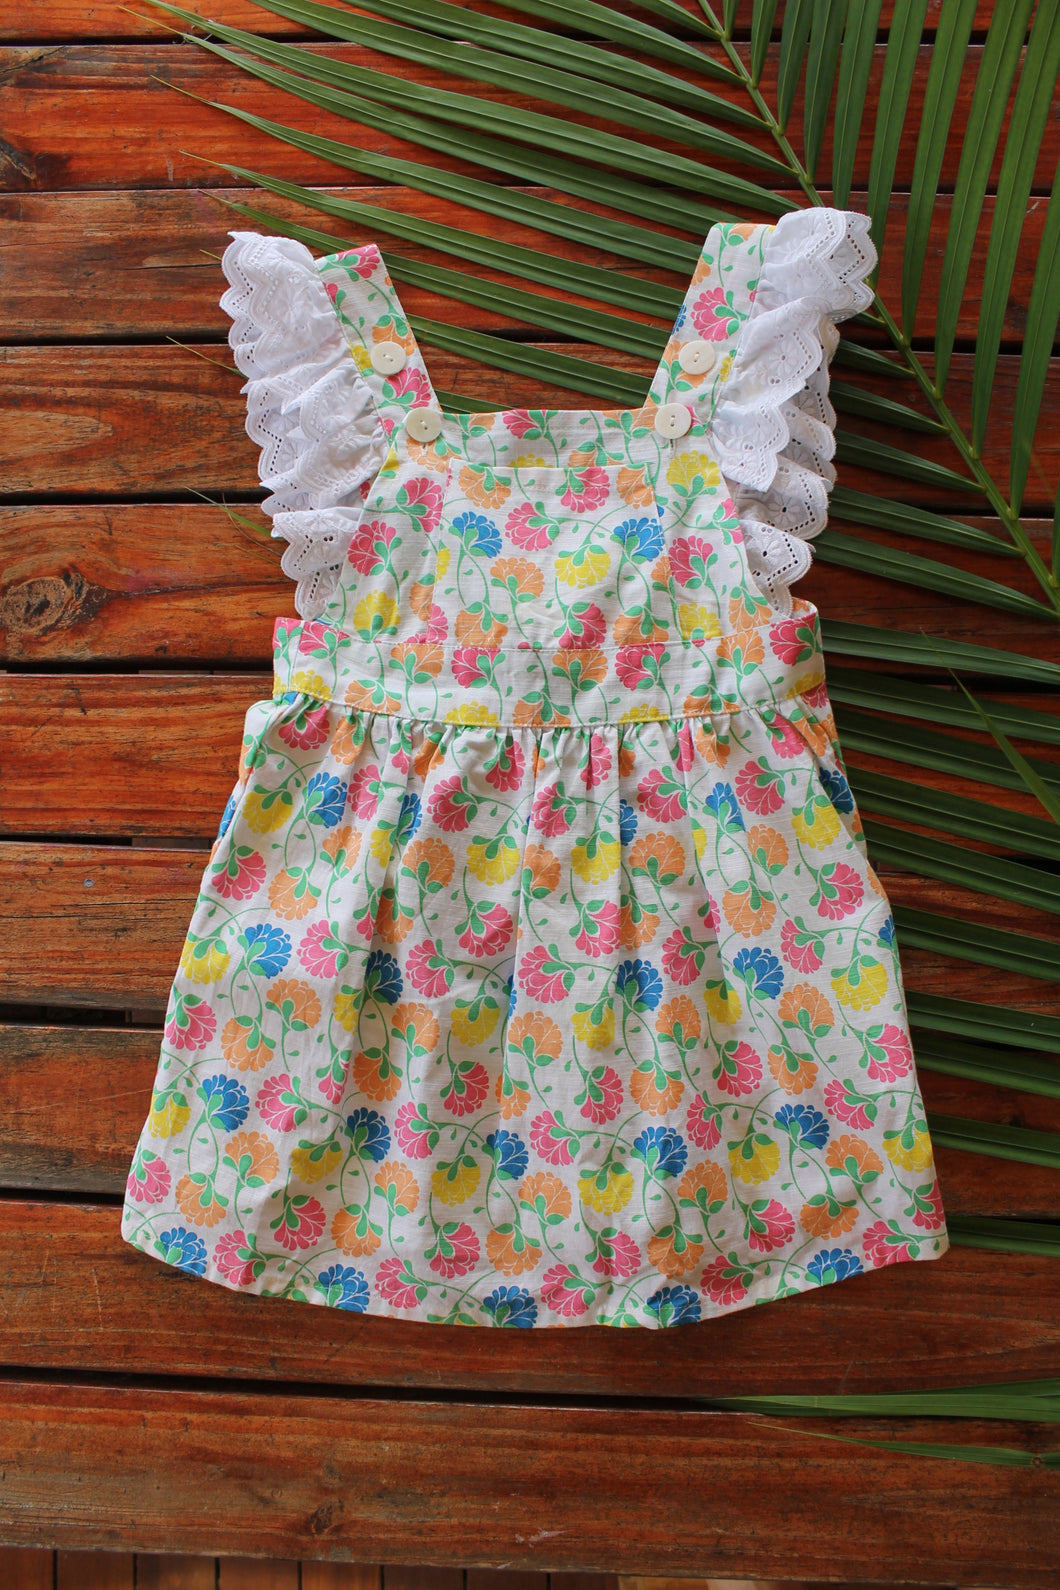 We Love Lace Pinafore Dress - Floral